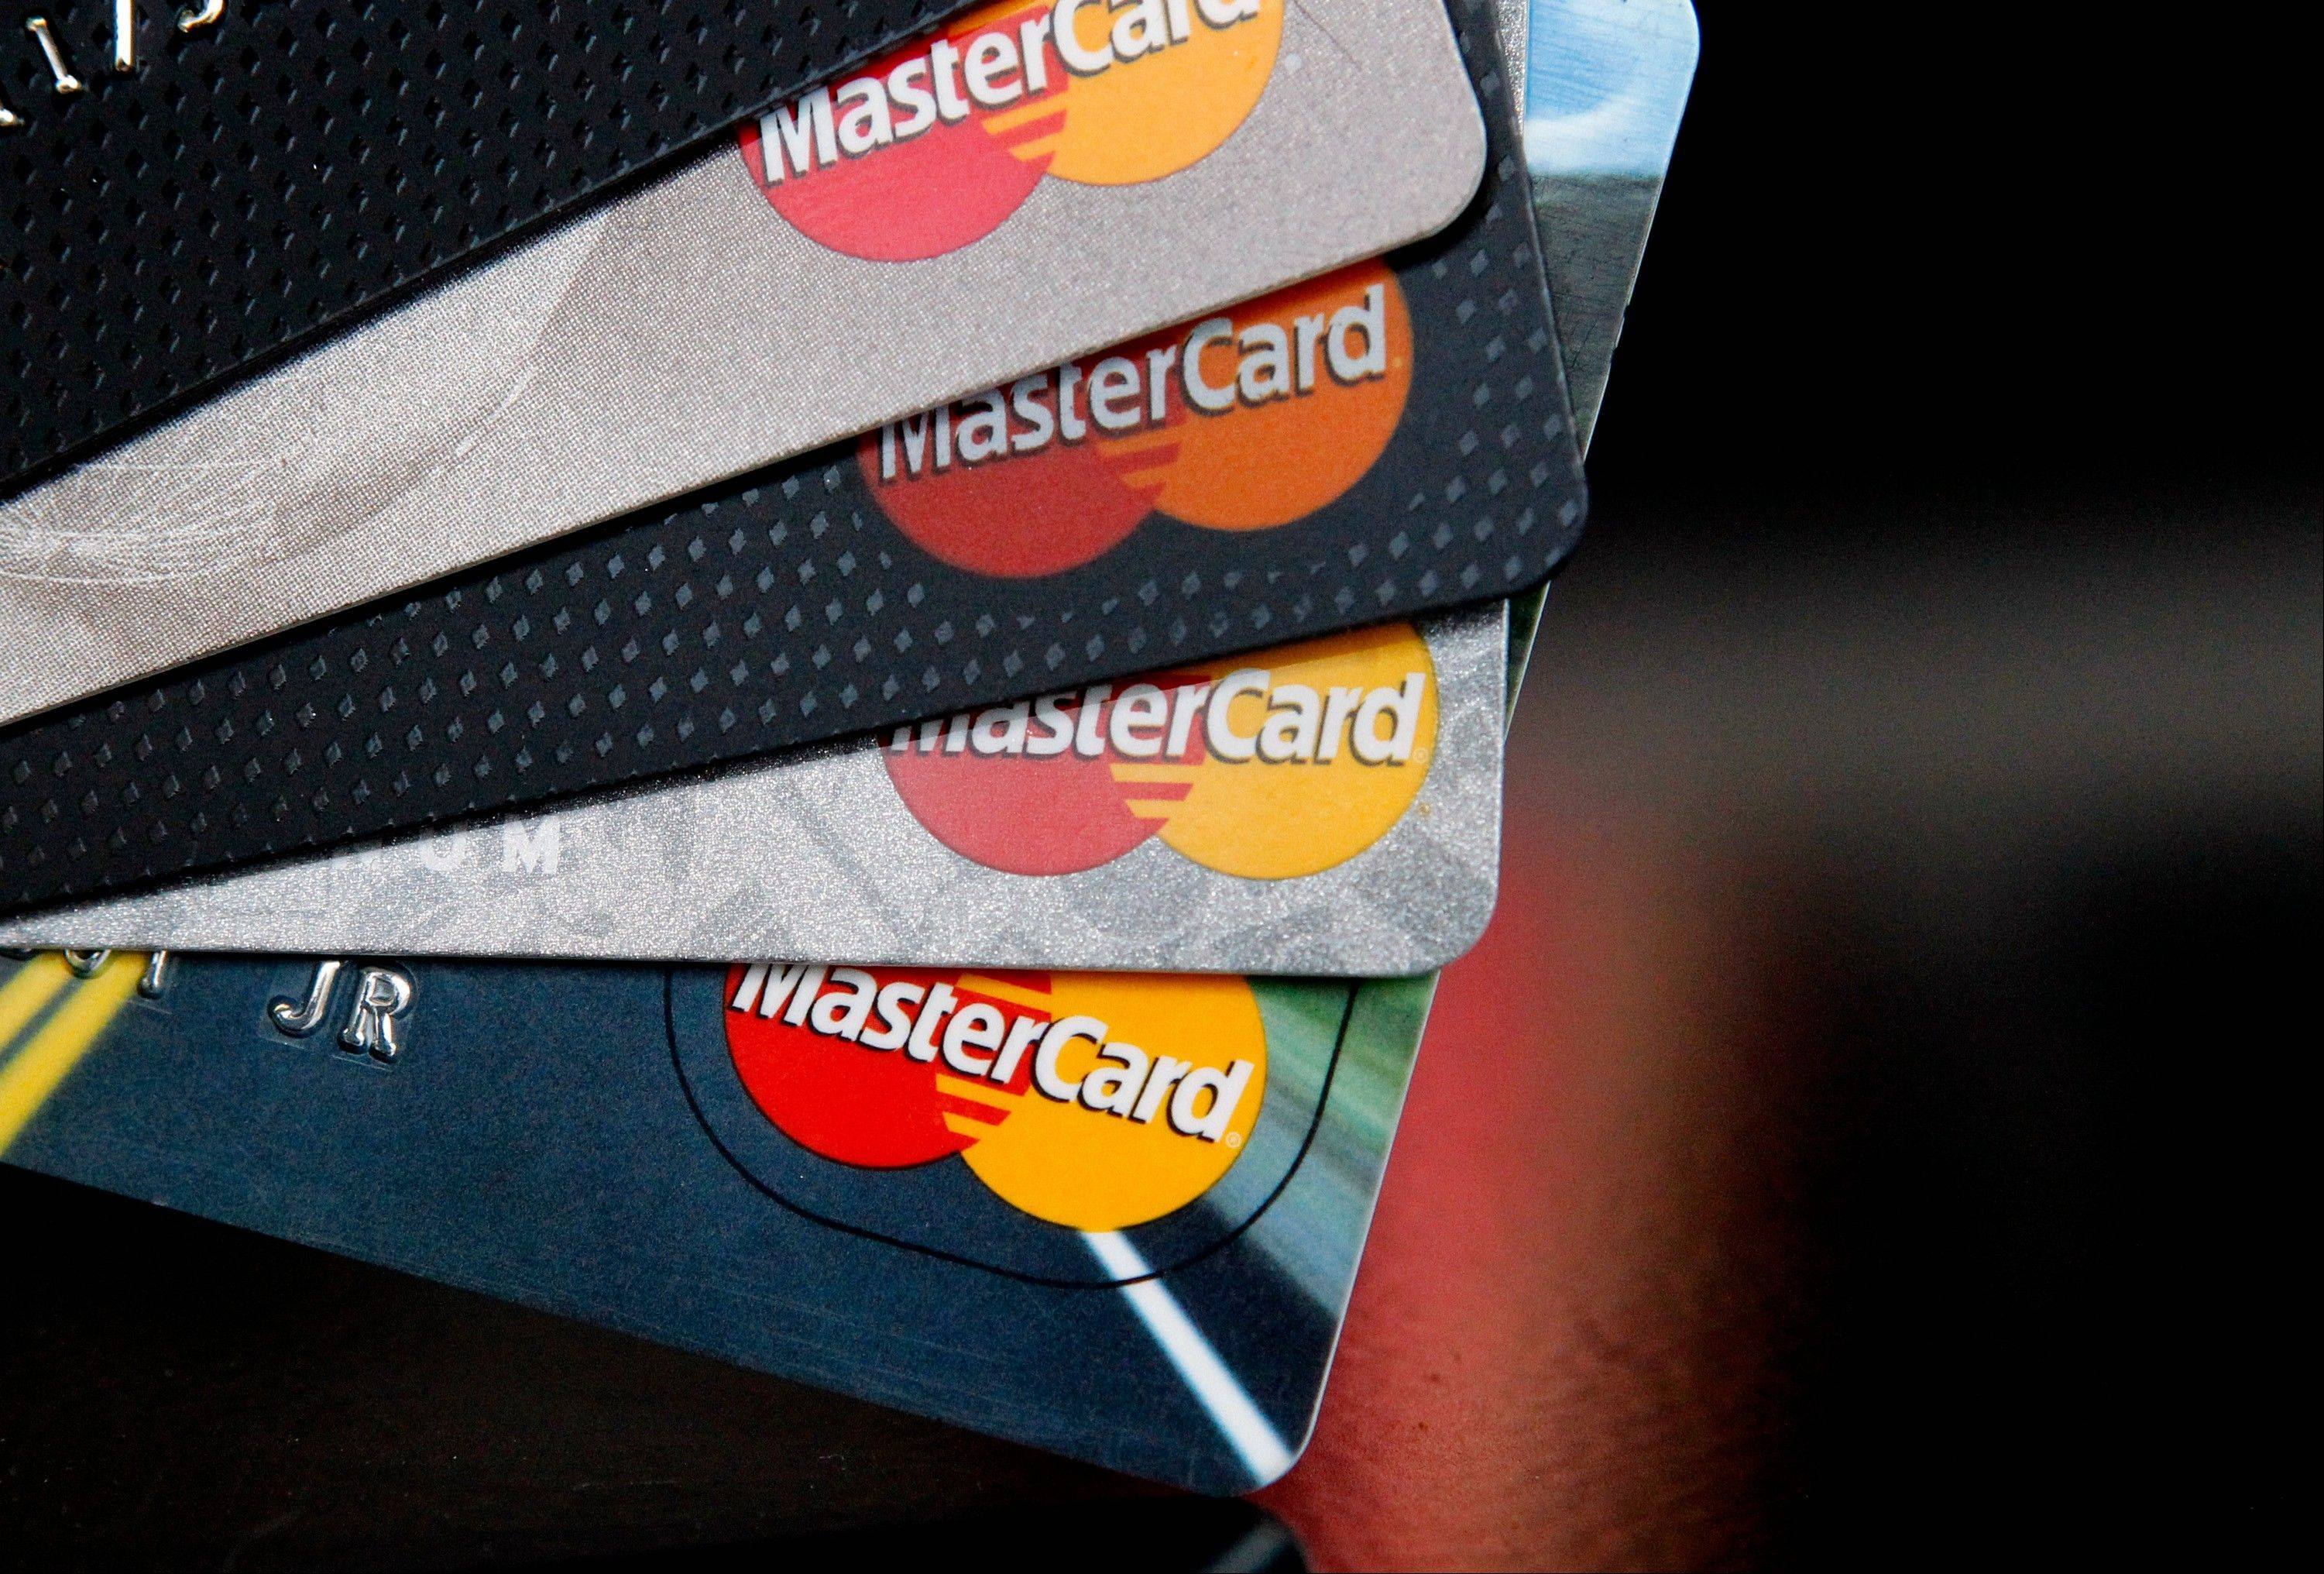 MasterCard's fourth-quarter earnings climbed 3 percent as higher revenue countered a jump in expenses, but results missed expectations.